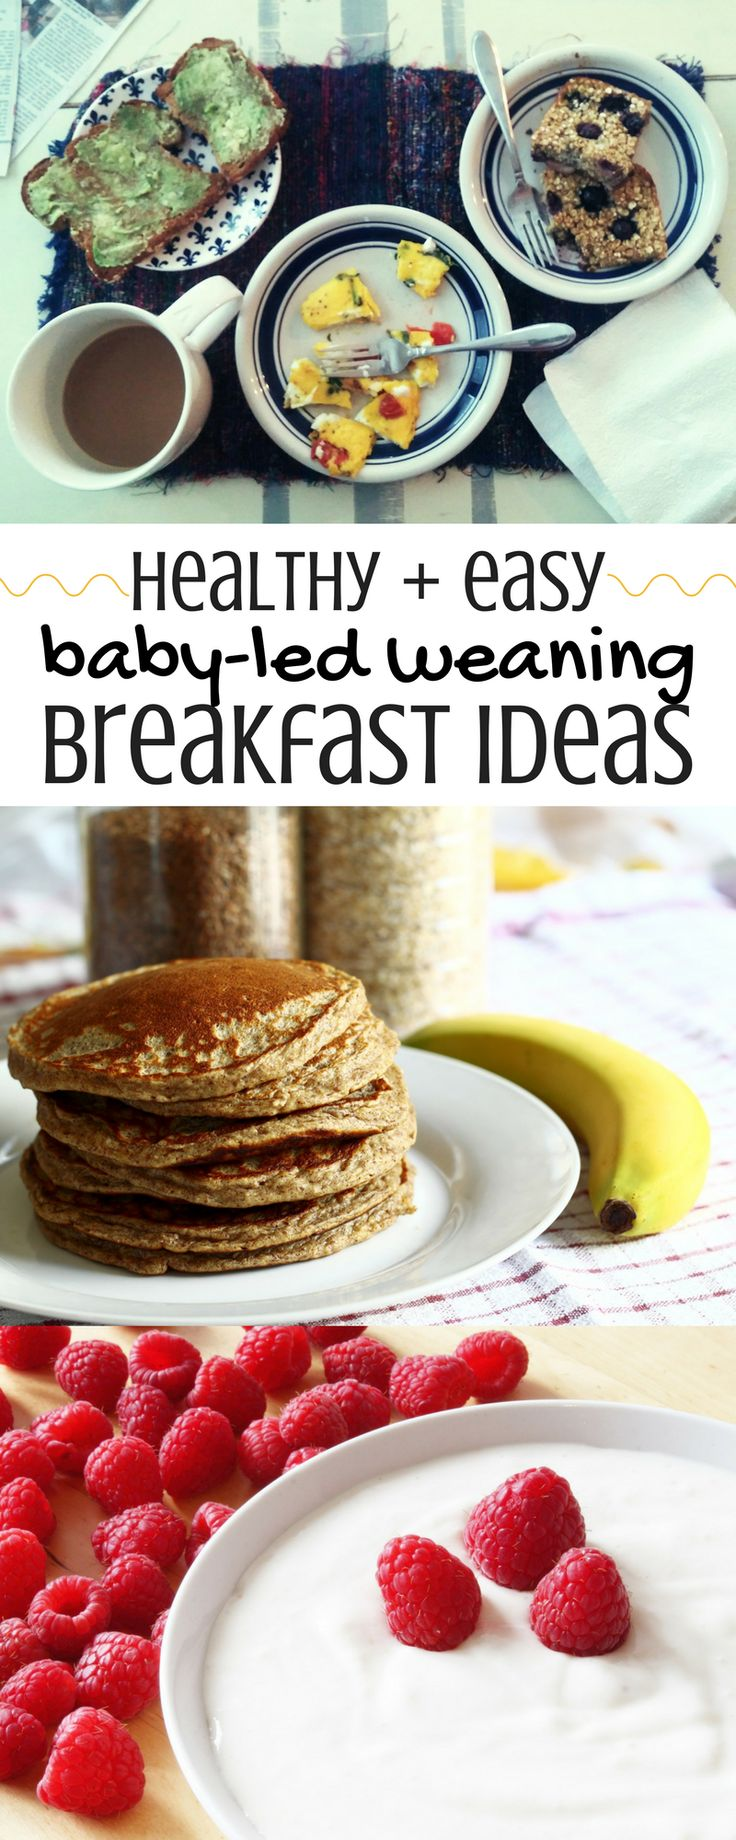 Baby-Led Weaning Breakfast Ideas   Baby Recipes   Baby Food   Baby-Led Weaning   7-10 month old   Breakfast Recipes   Easy   Healthy